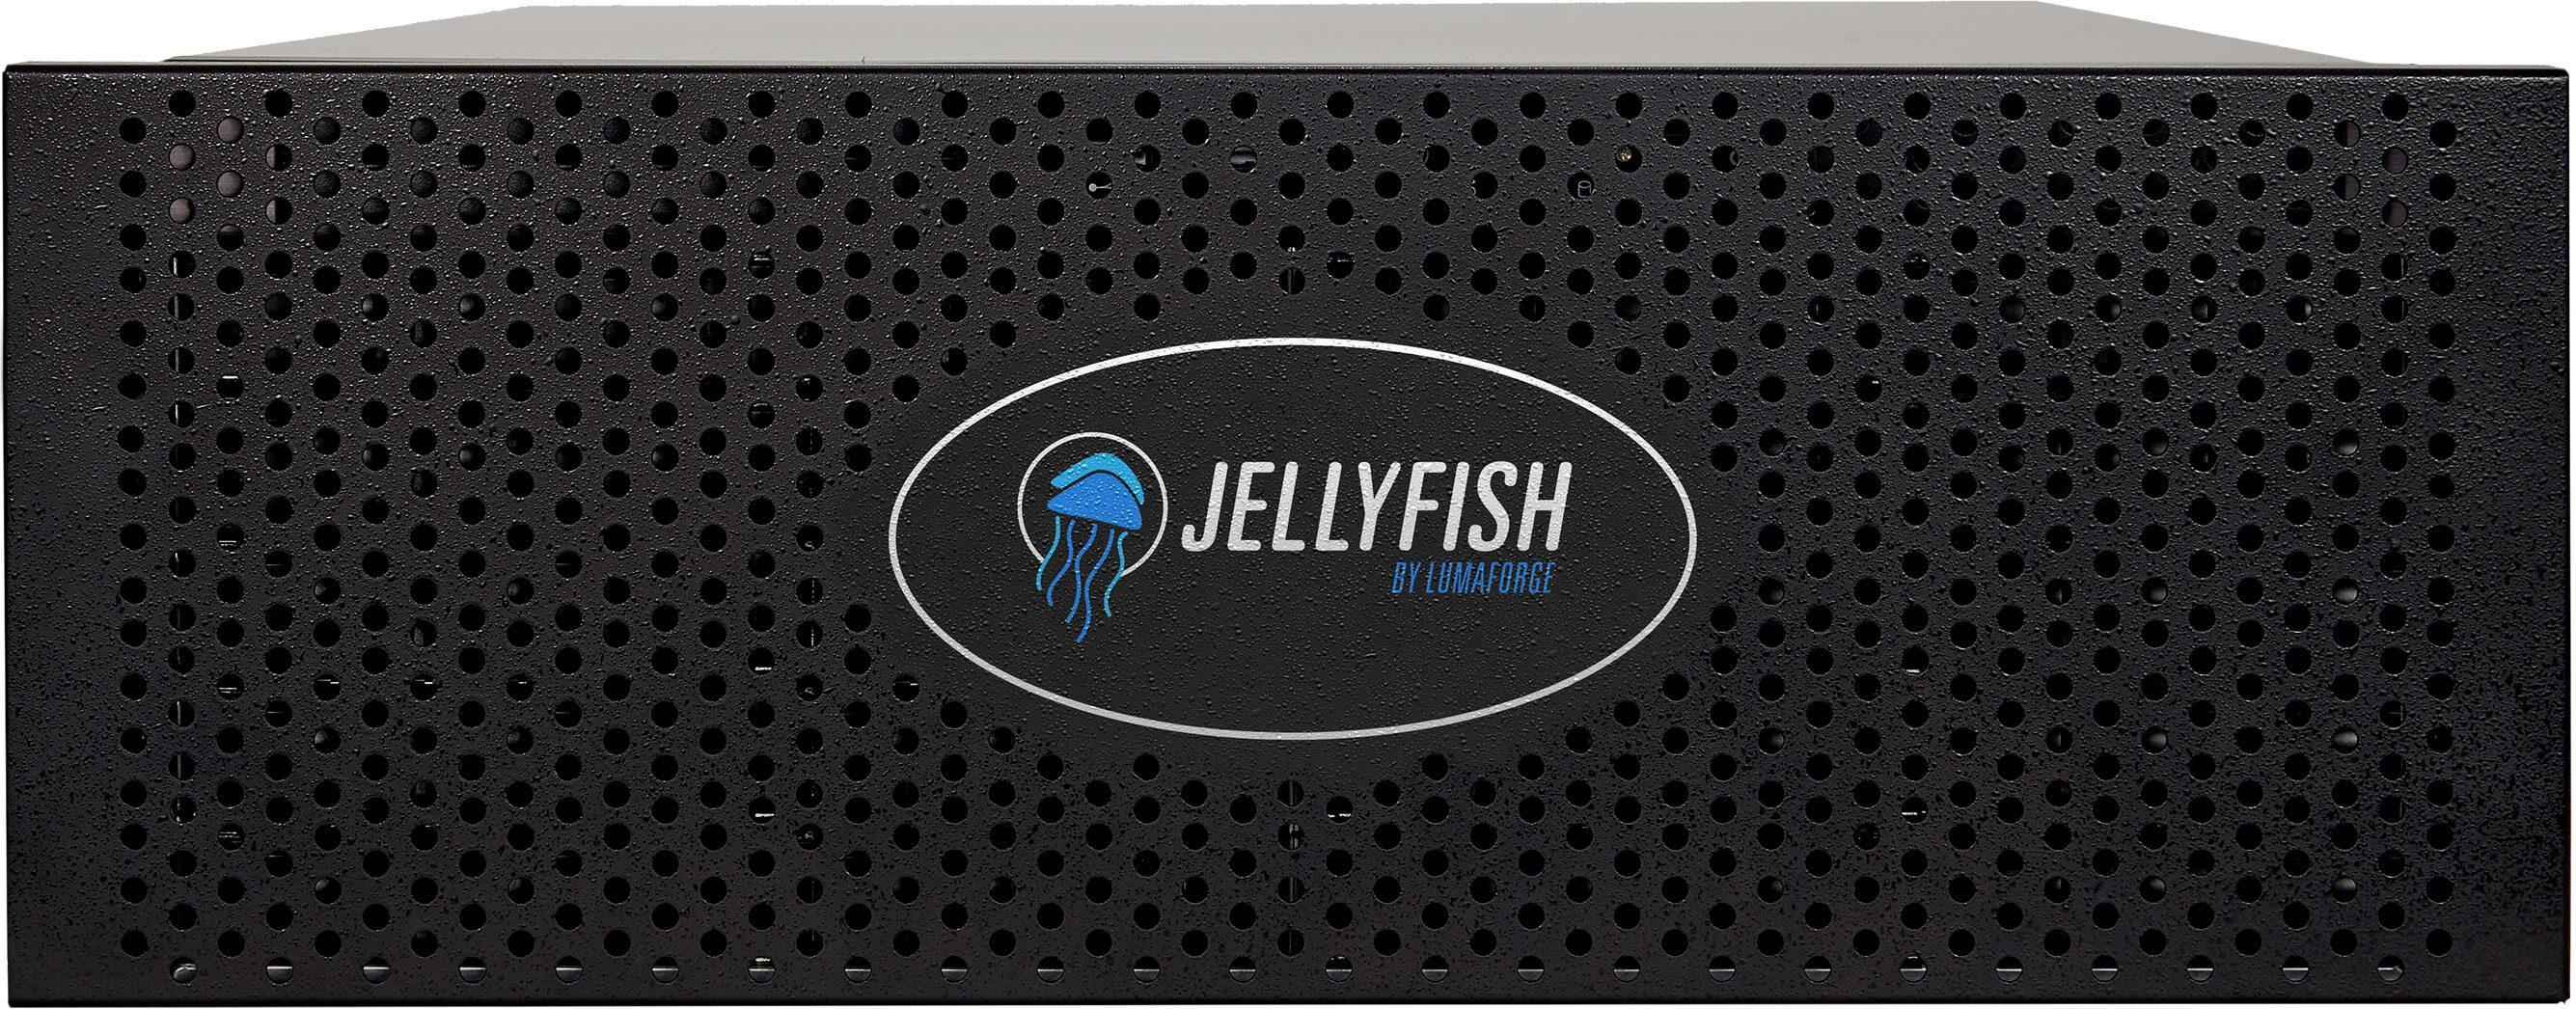 LumaForge Jellyfish Rack product image